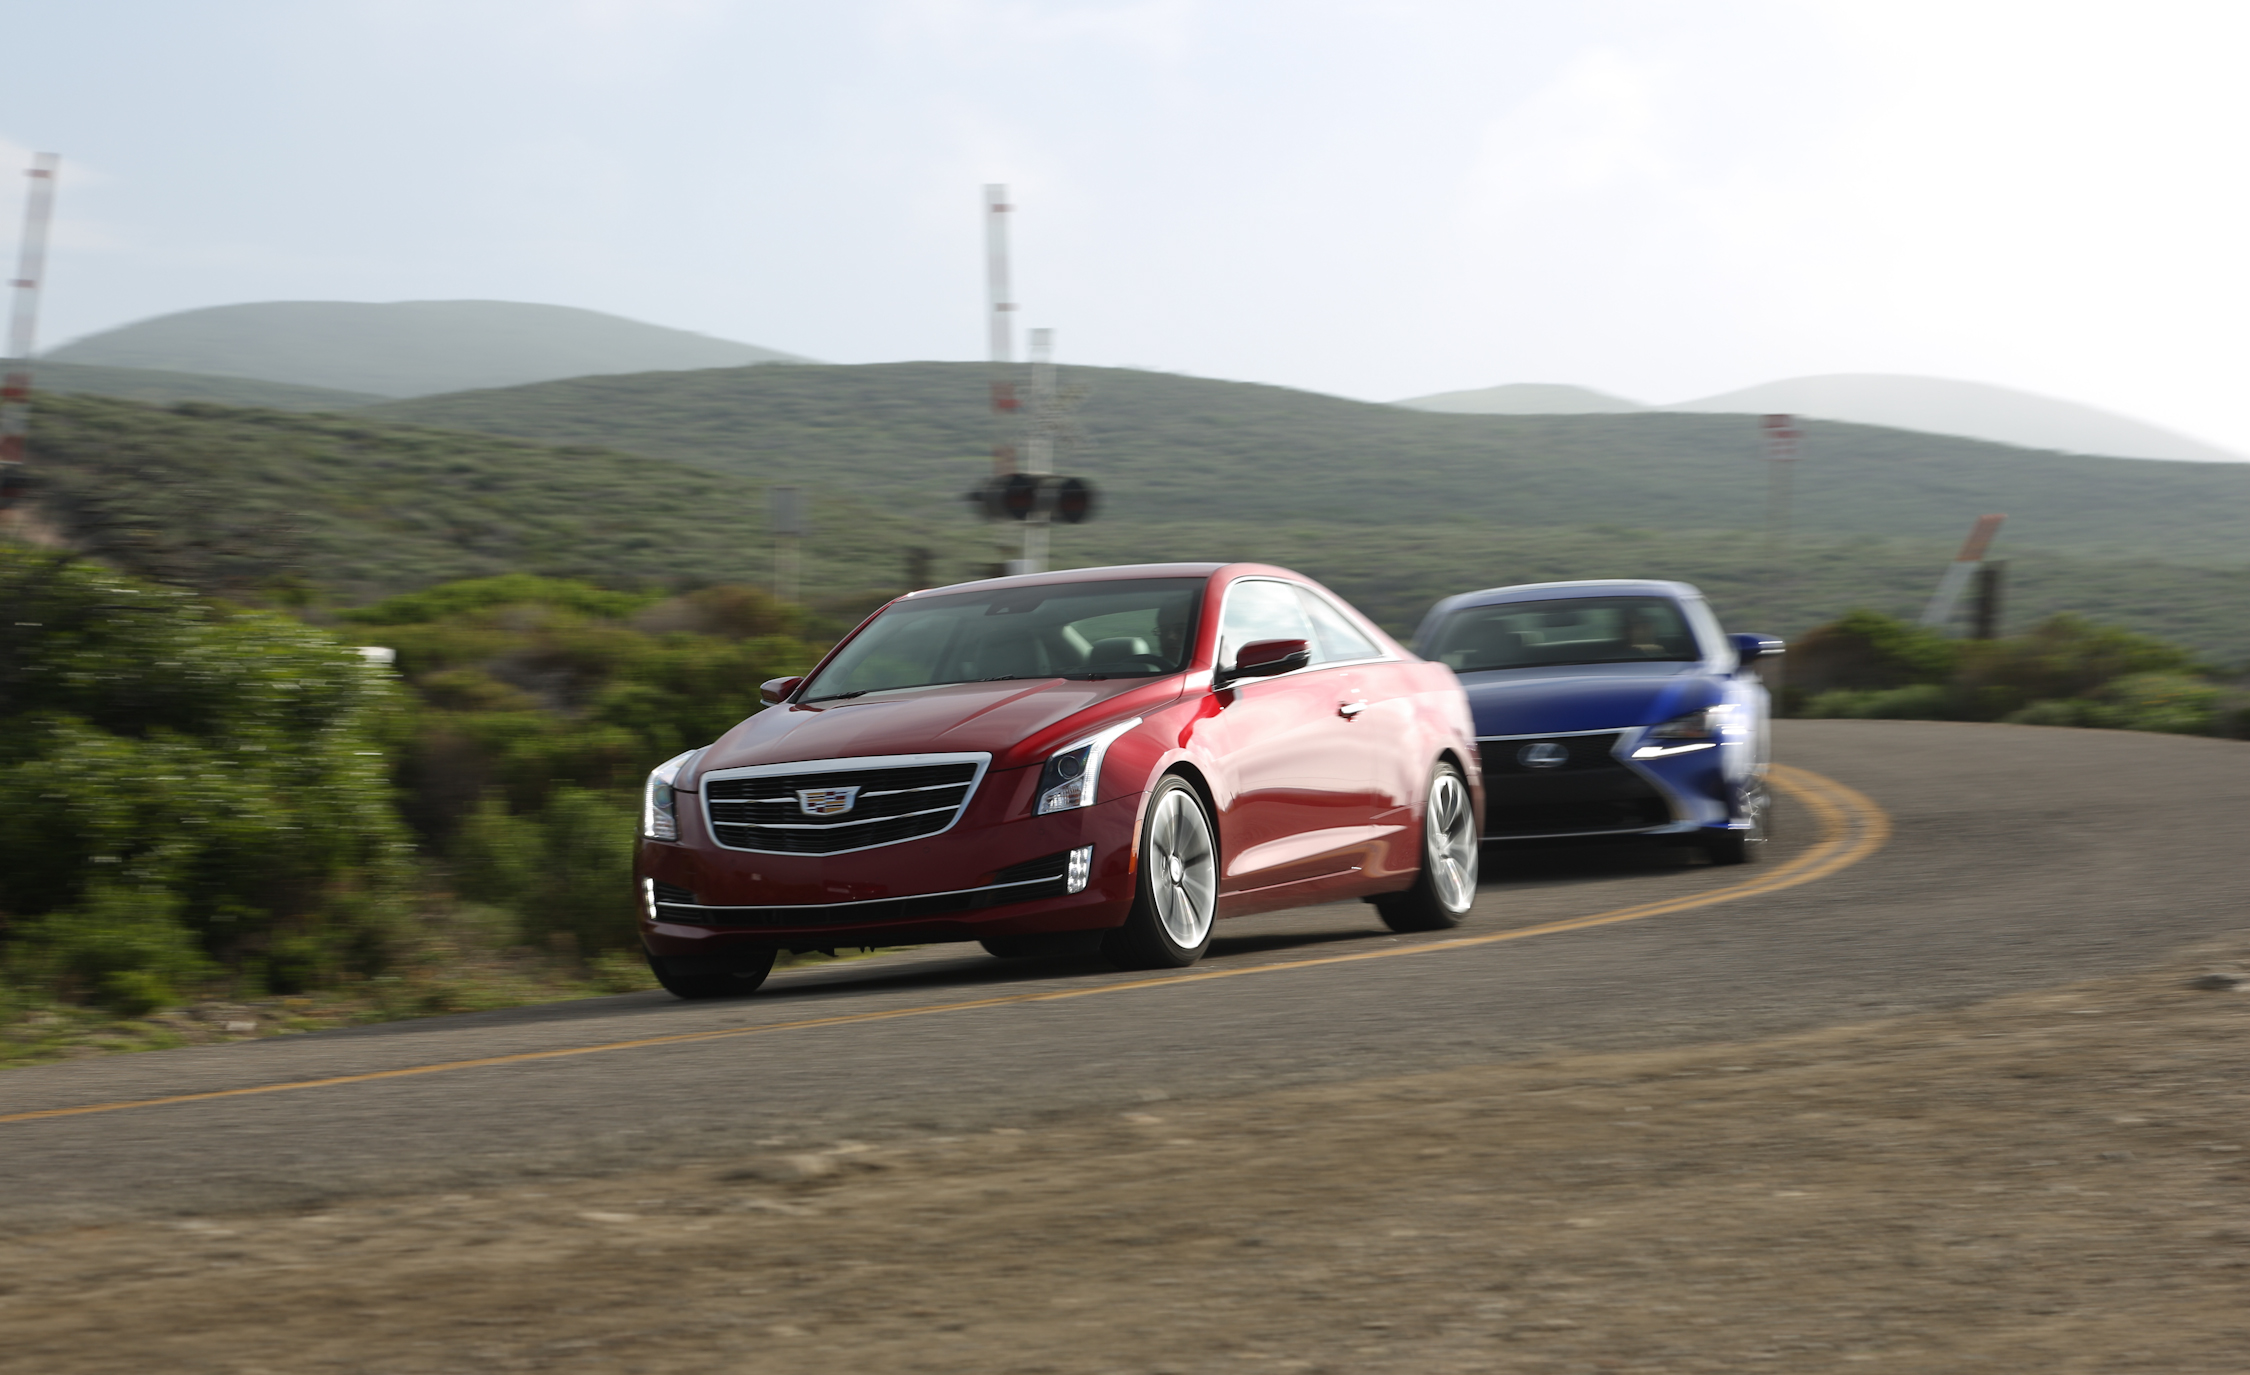 2015 Cadillac ATS Coupe 3.6 Front Design